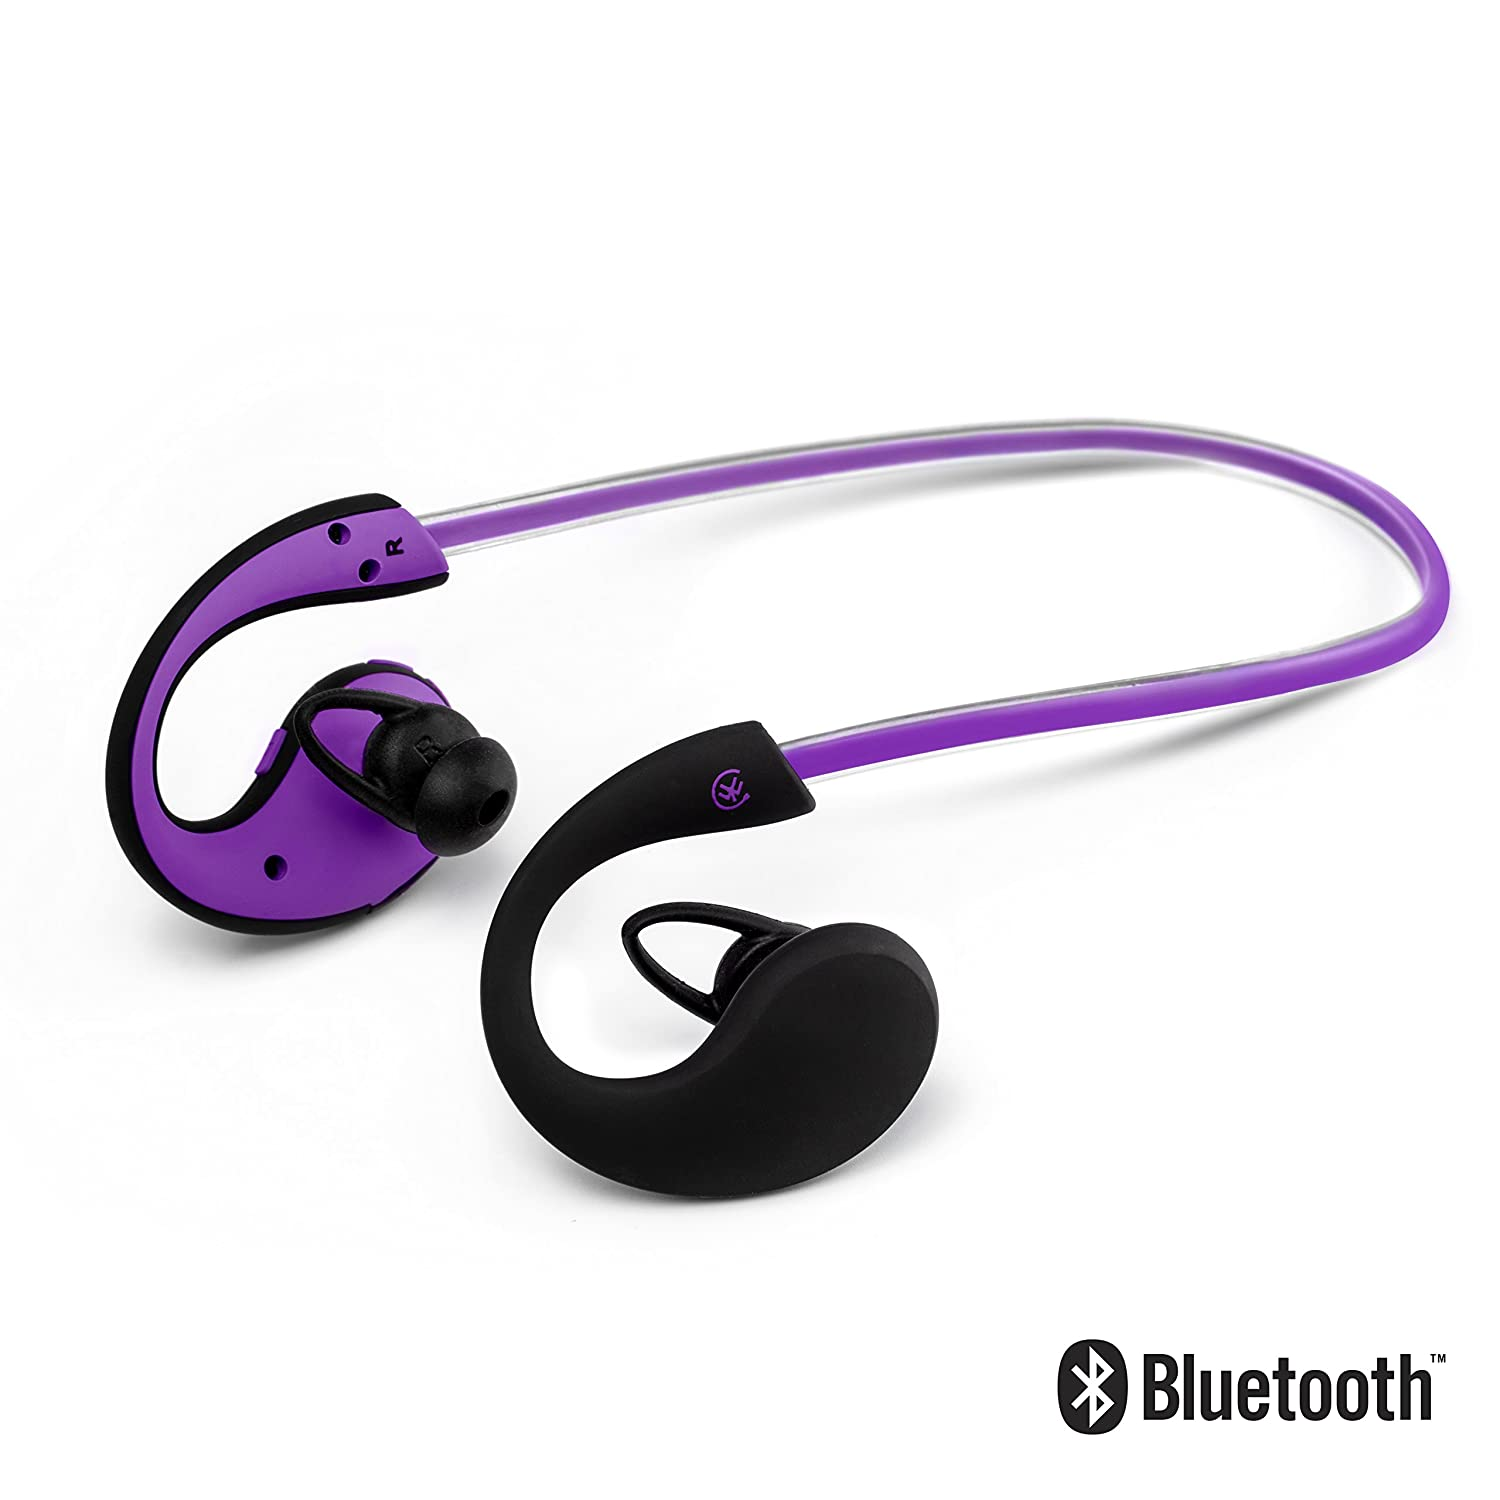 Urbanz Extreme Inalámbrica Bluetooth IPX6 Impermeable Sumergible ...